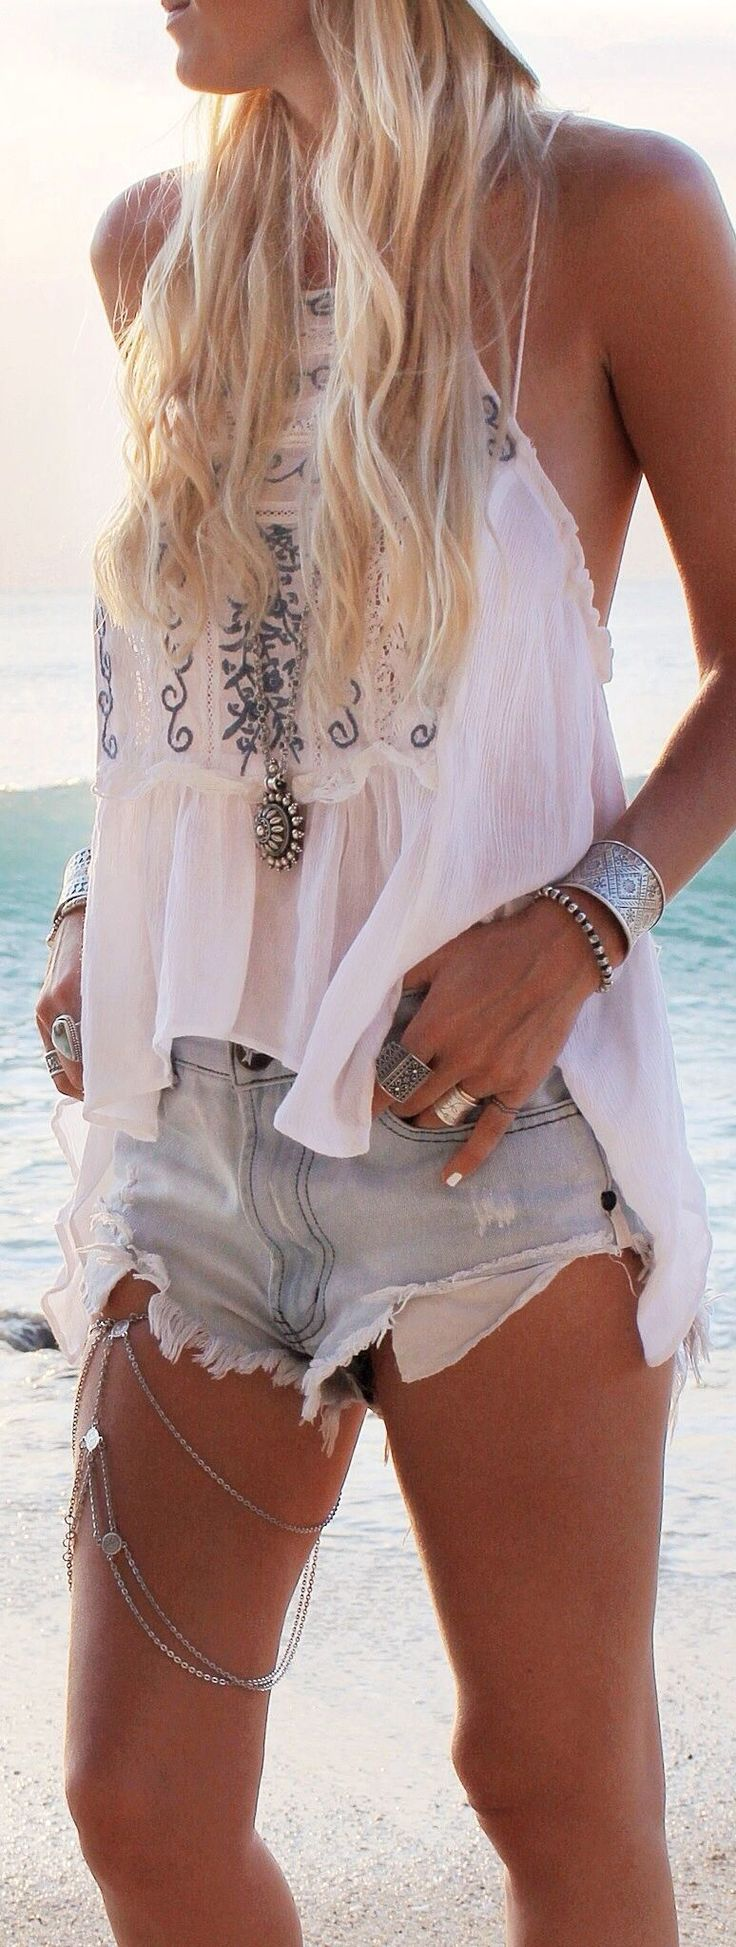 ≫∙∙ boho, feathers + gypsy spirit ∙∙≪ Absolutely love!!!